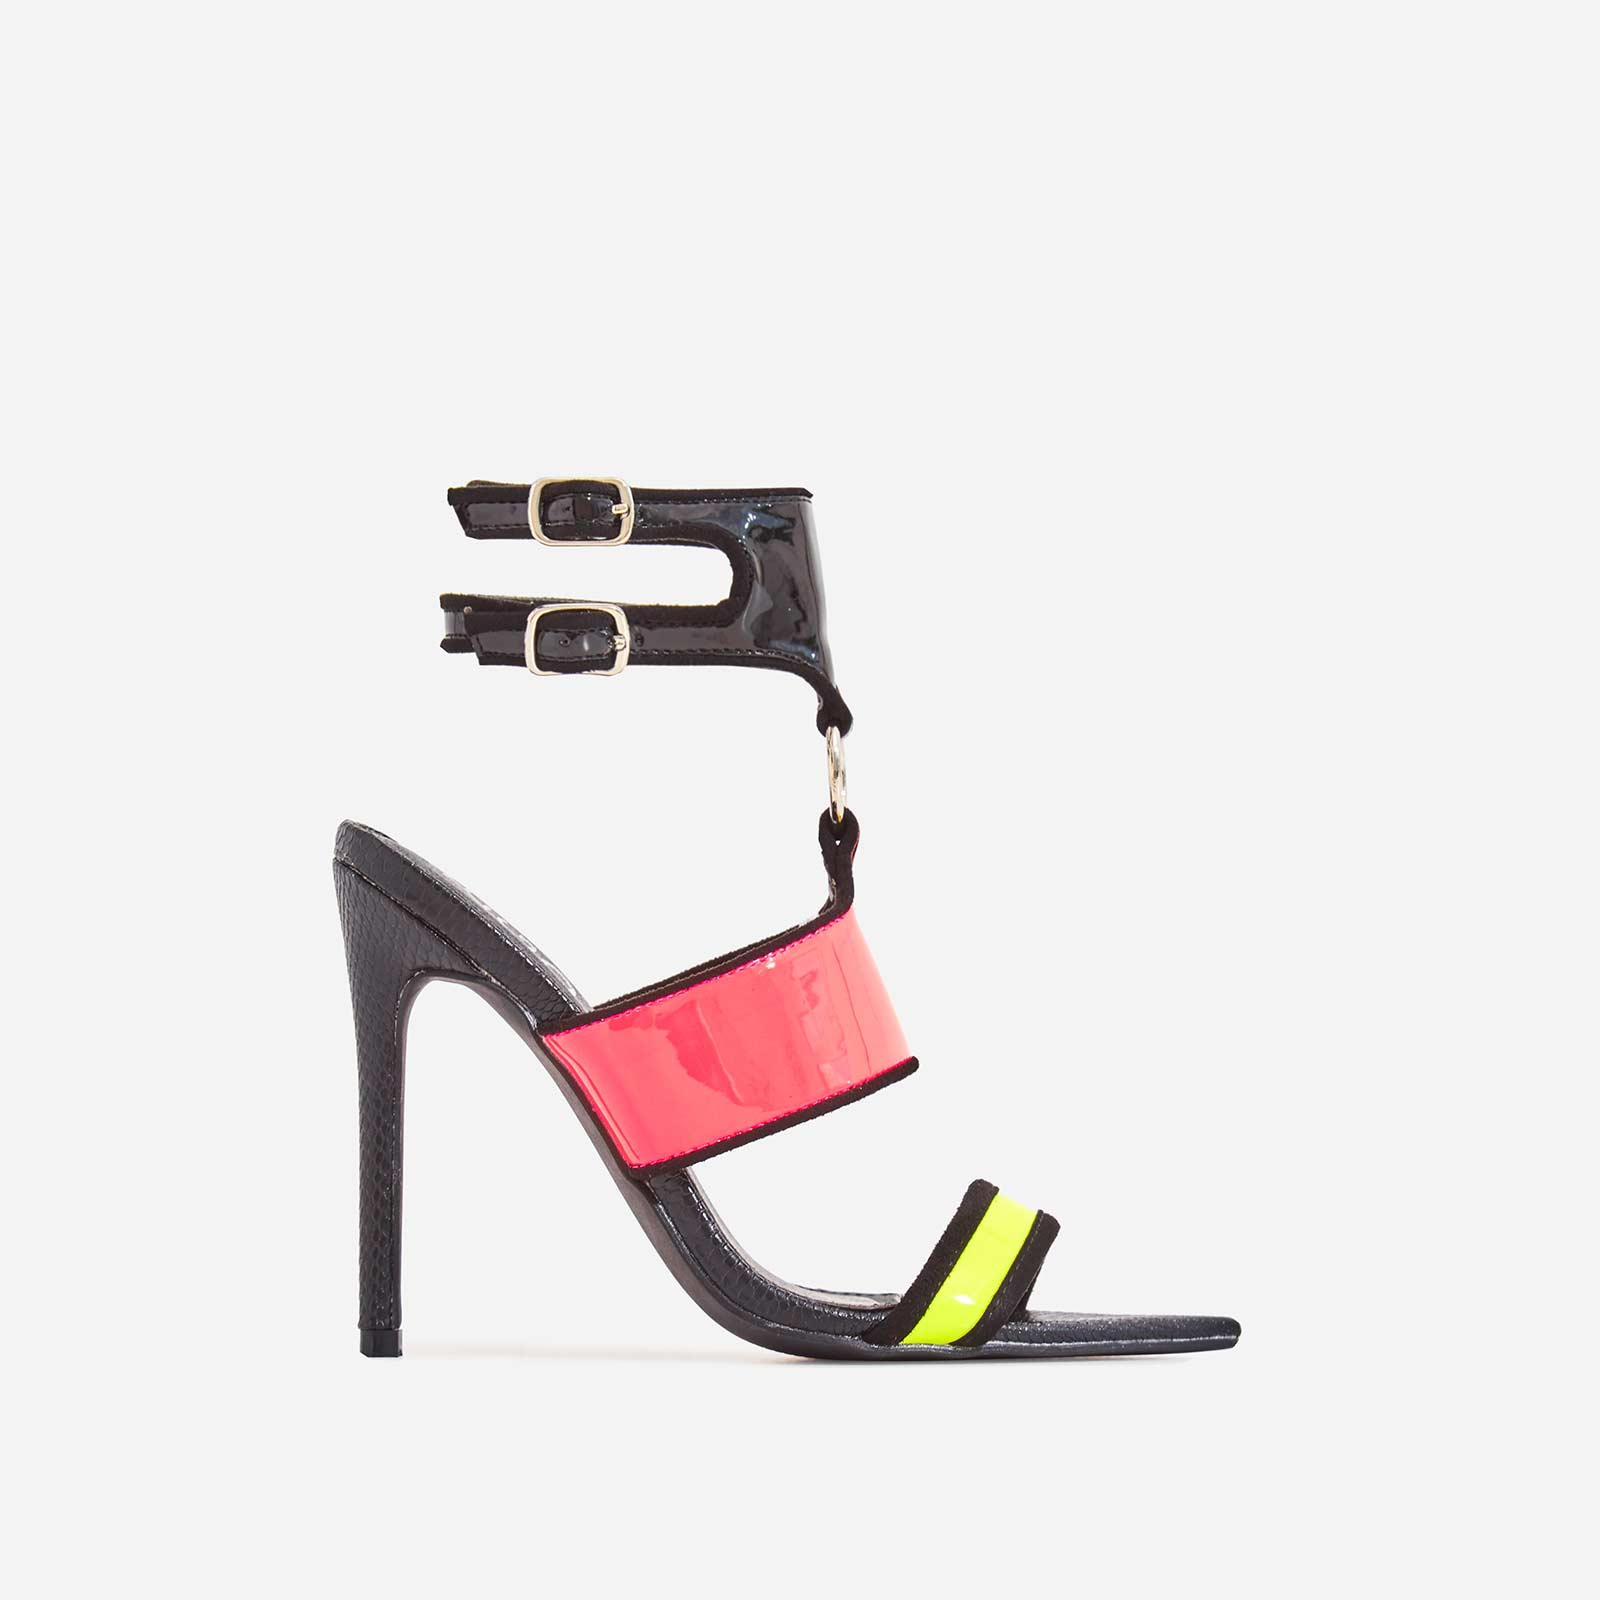 Lex Pink Patent Perspex Cage Heel In Black Snake Print Faux Leather